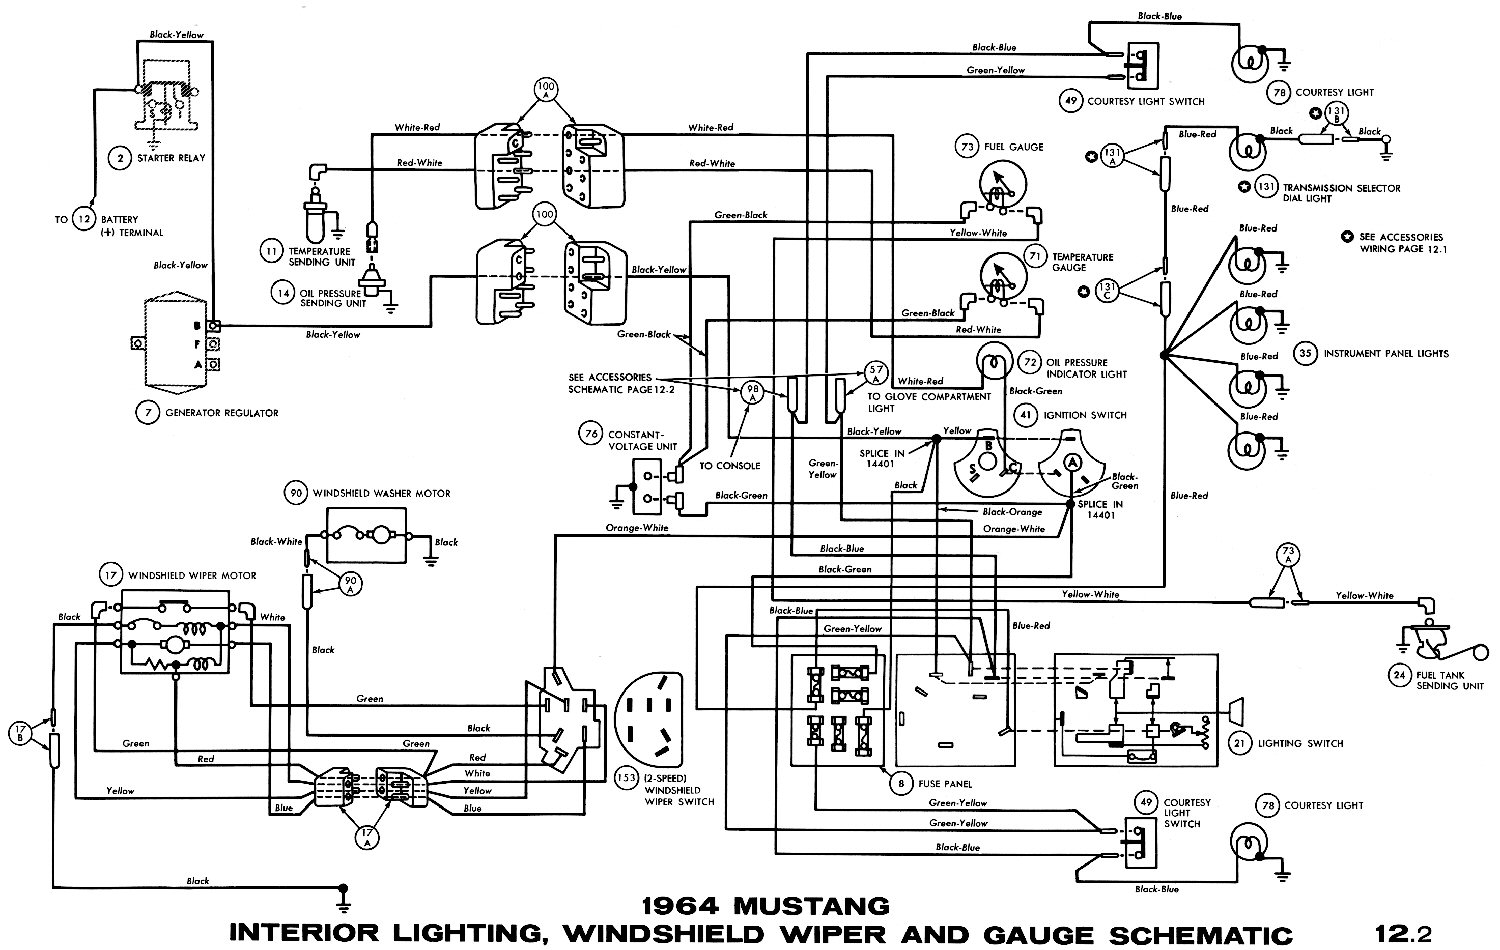 Incredible 1964 Mustang Wiring Diagrams Average Joe Restoration Wiring Digital Resources Cettecompassionincorg